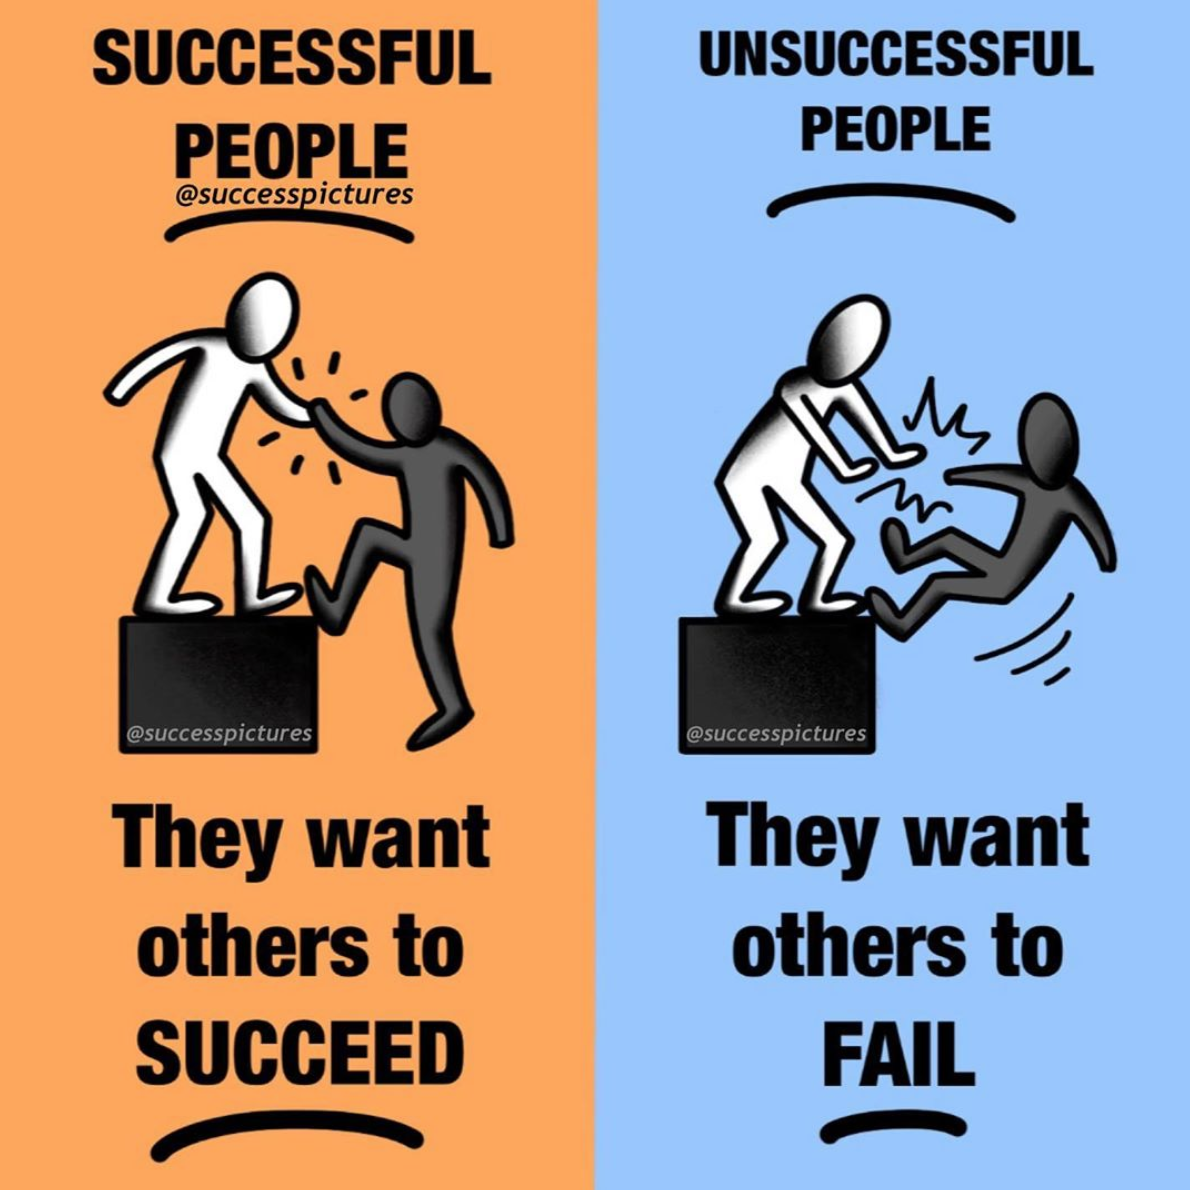 [Image] Successful people also help others to achieve success